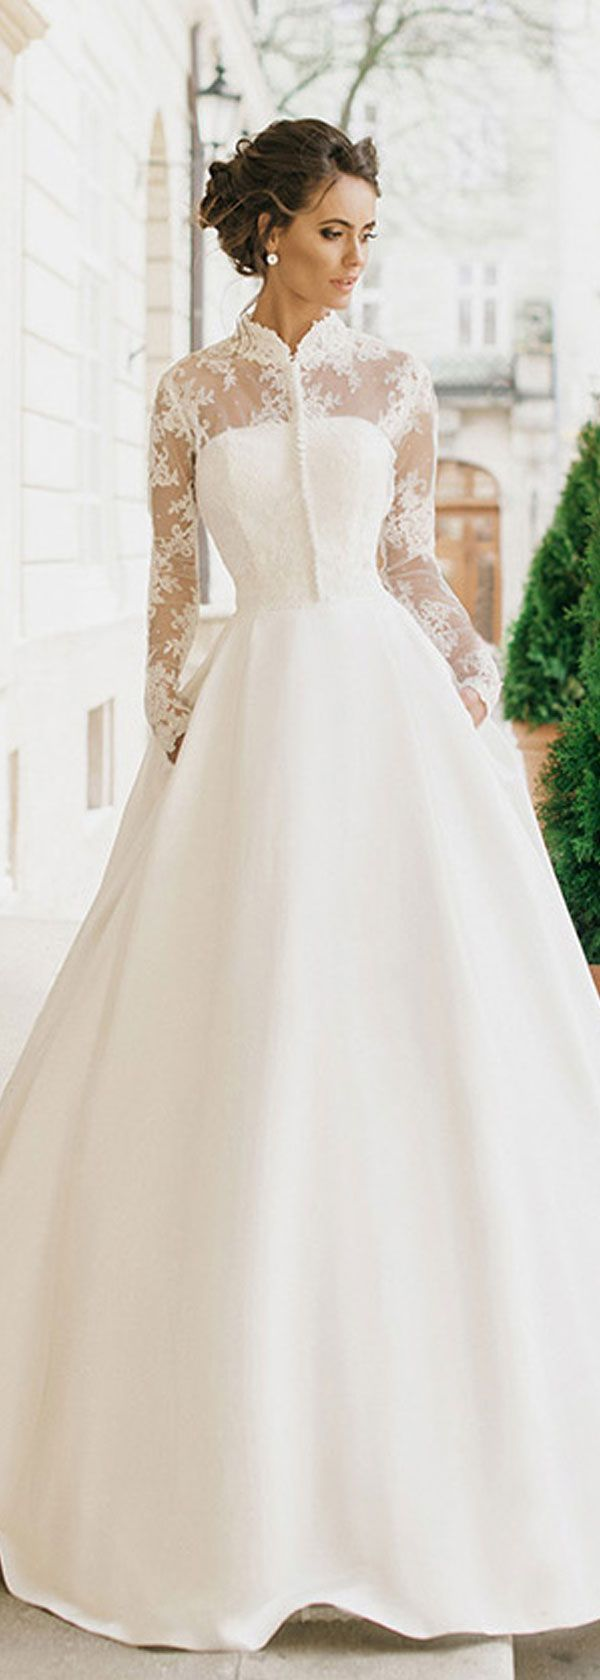 Gorgeous Satin High Collar NecklineA-line Wedding Dresses With Detachable…